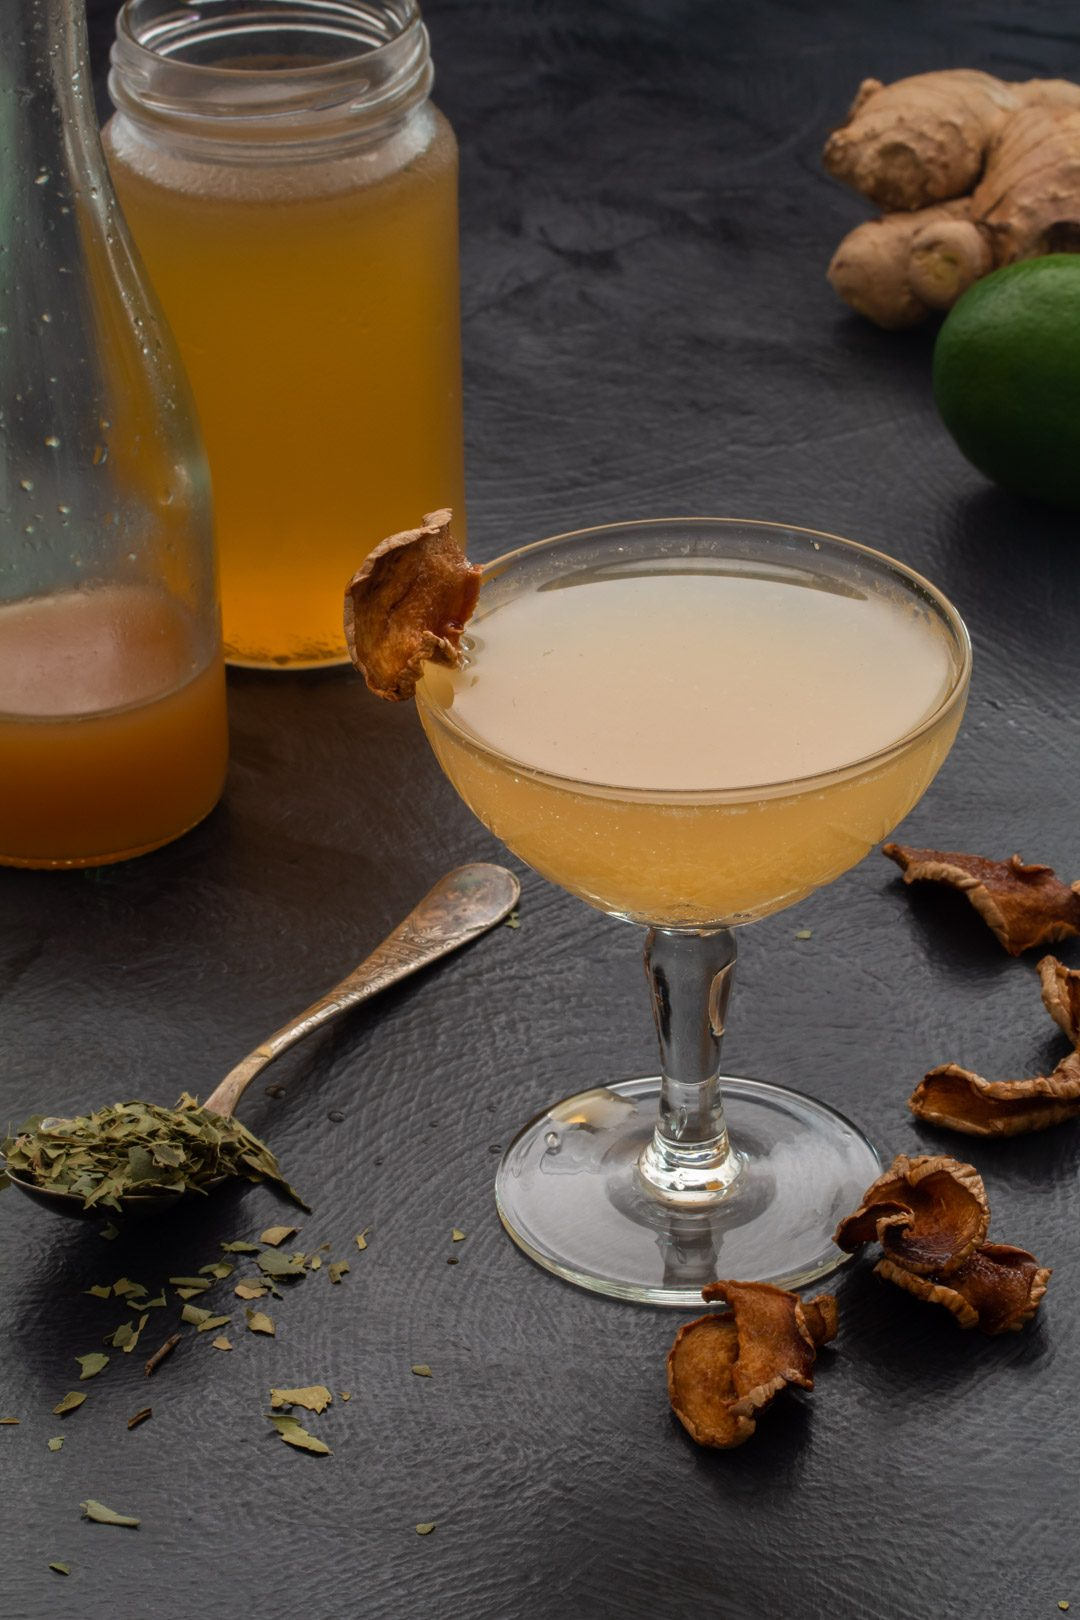 Ginger lime shrub daiquiri with cinnamon myrtle and ginger crisps: 45 degrees making, framed